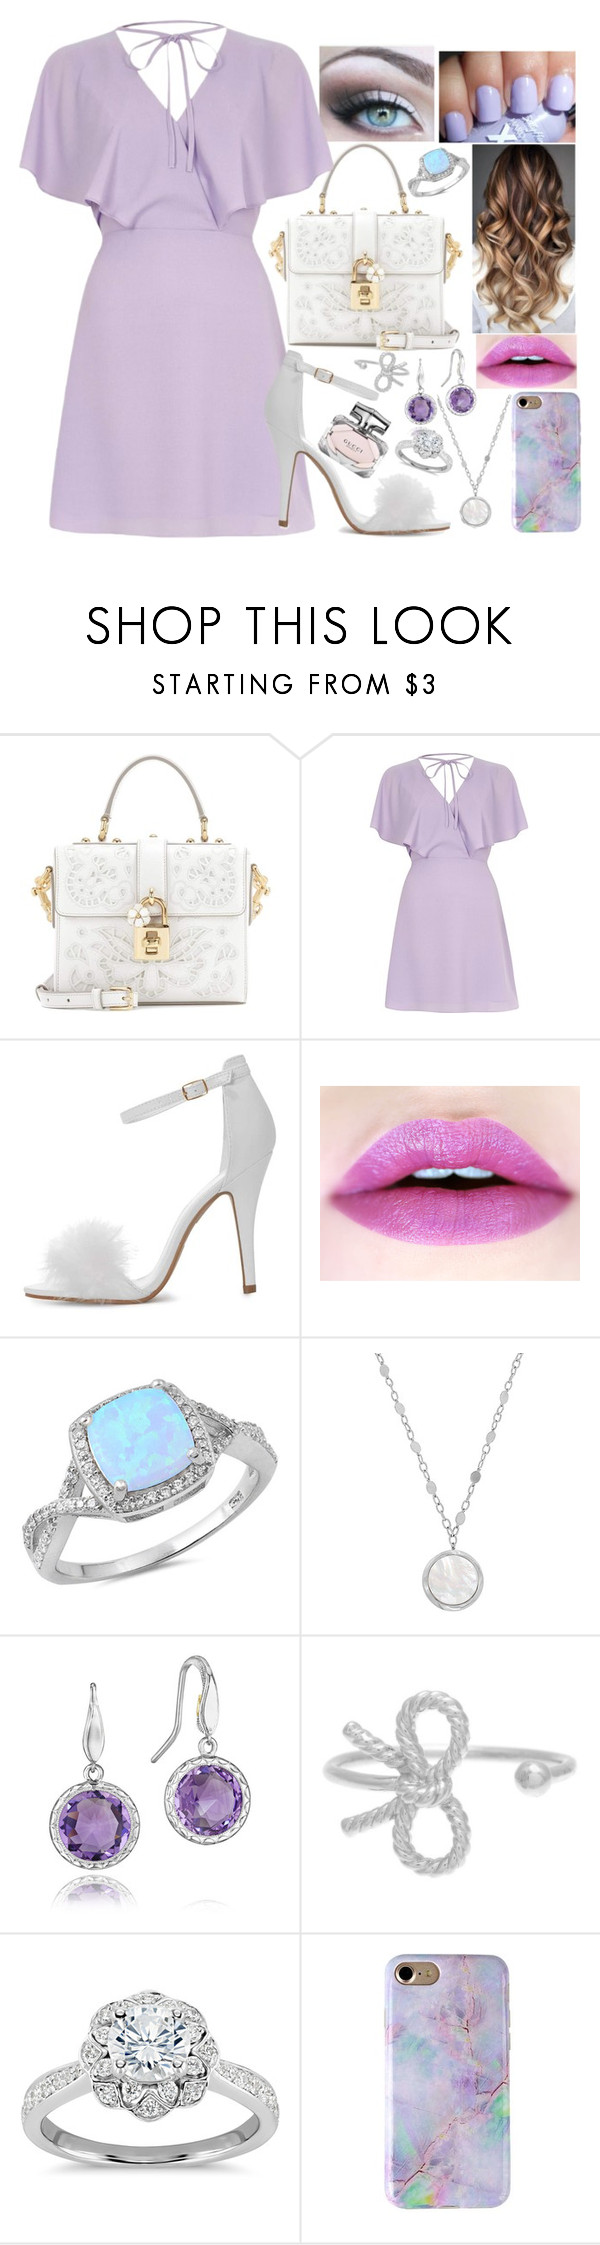 """#101"" by moon-crystal-wolff ❤ liked on Polyvore featuring Dolce&Gabbana, River Island, Honora, Tacori, Olivia Burton, Zac Posen and Gucci"